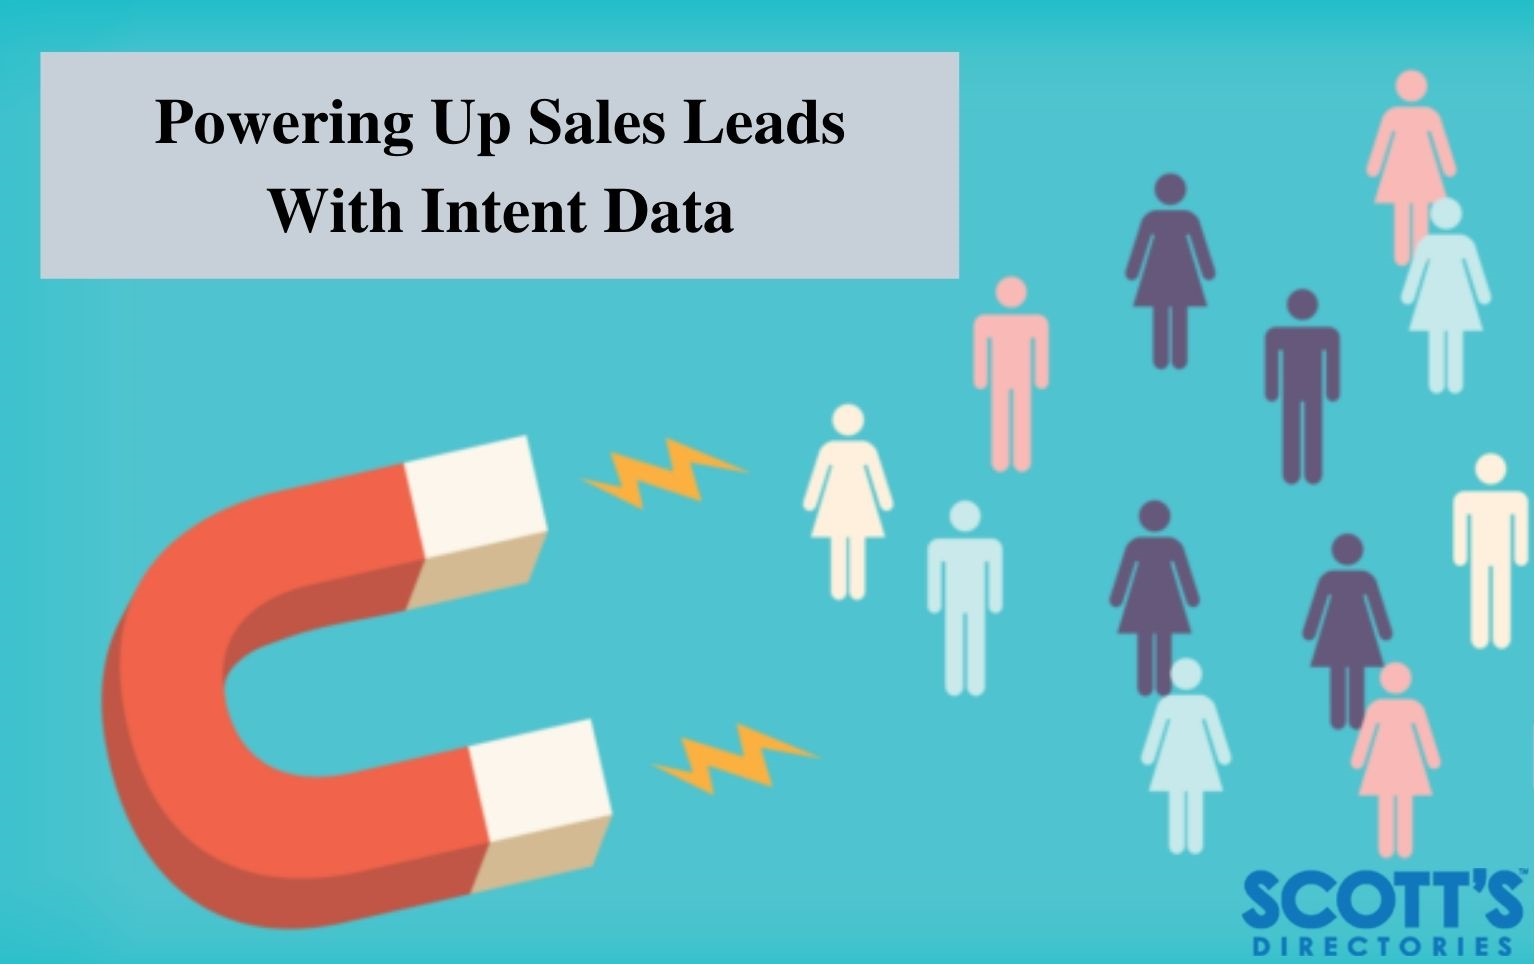 Powering up sales leads